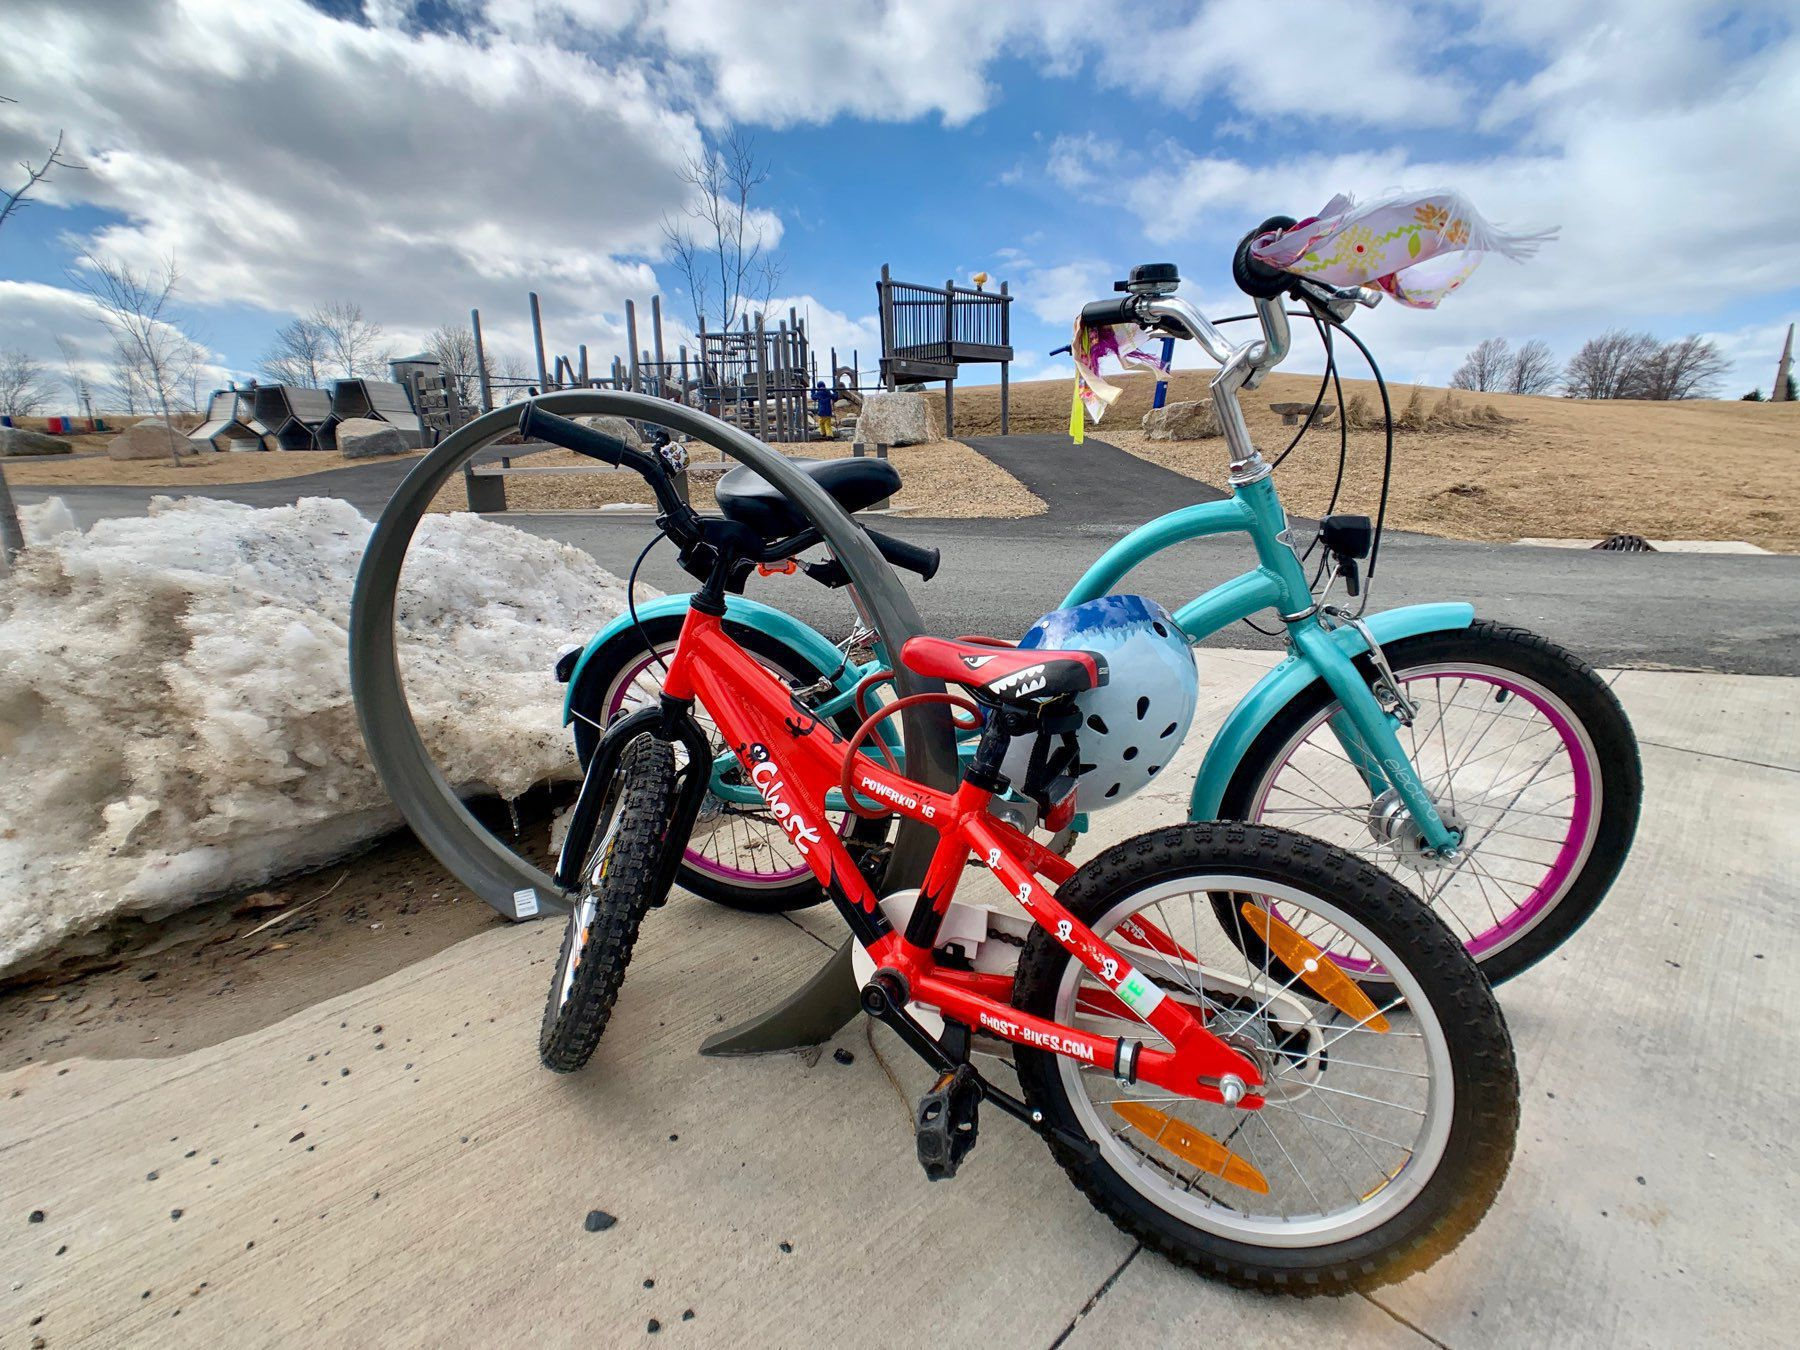 Two children's bicycles outside of playground